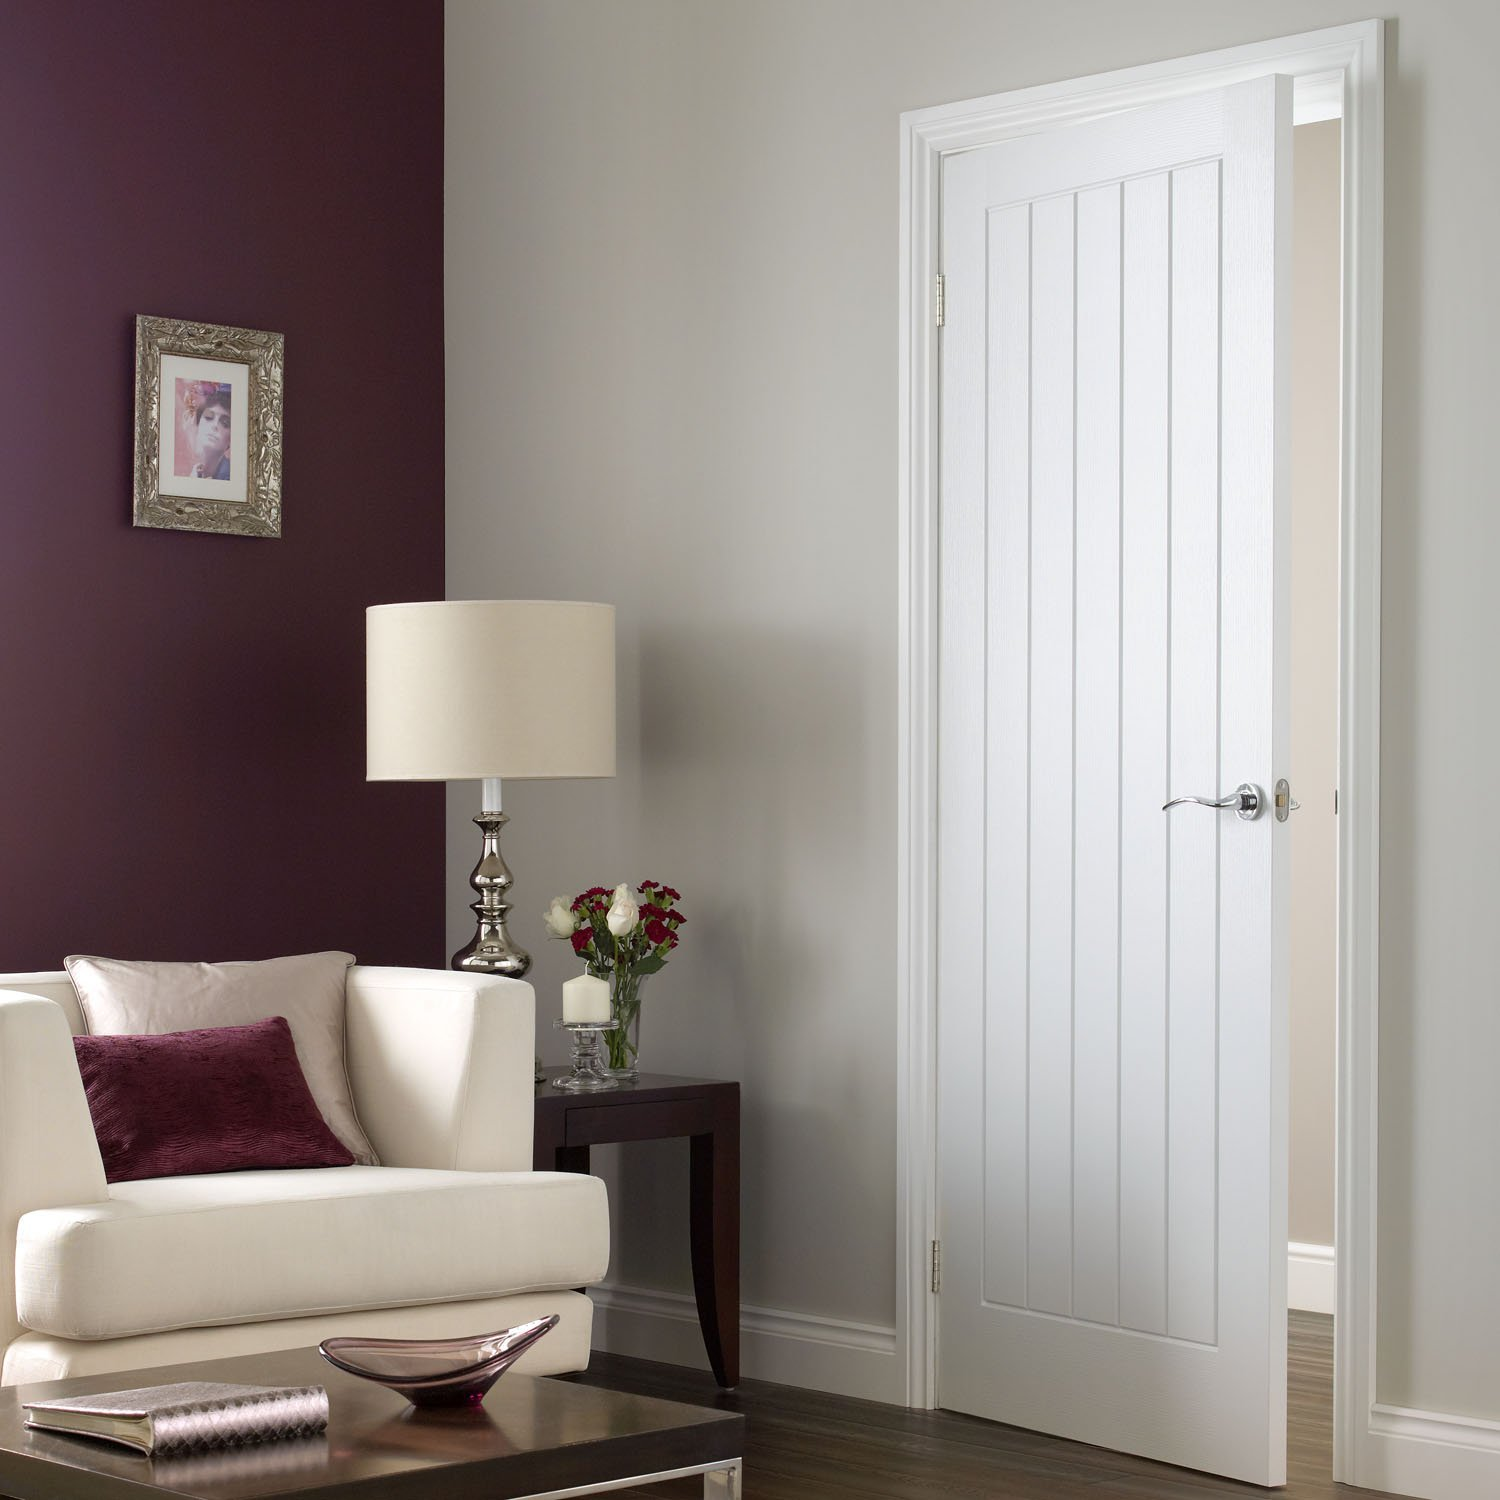 White interior doors for sale look very elegant and add light to your house